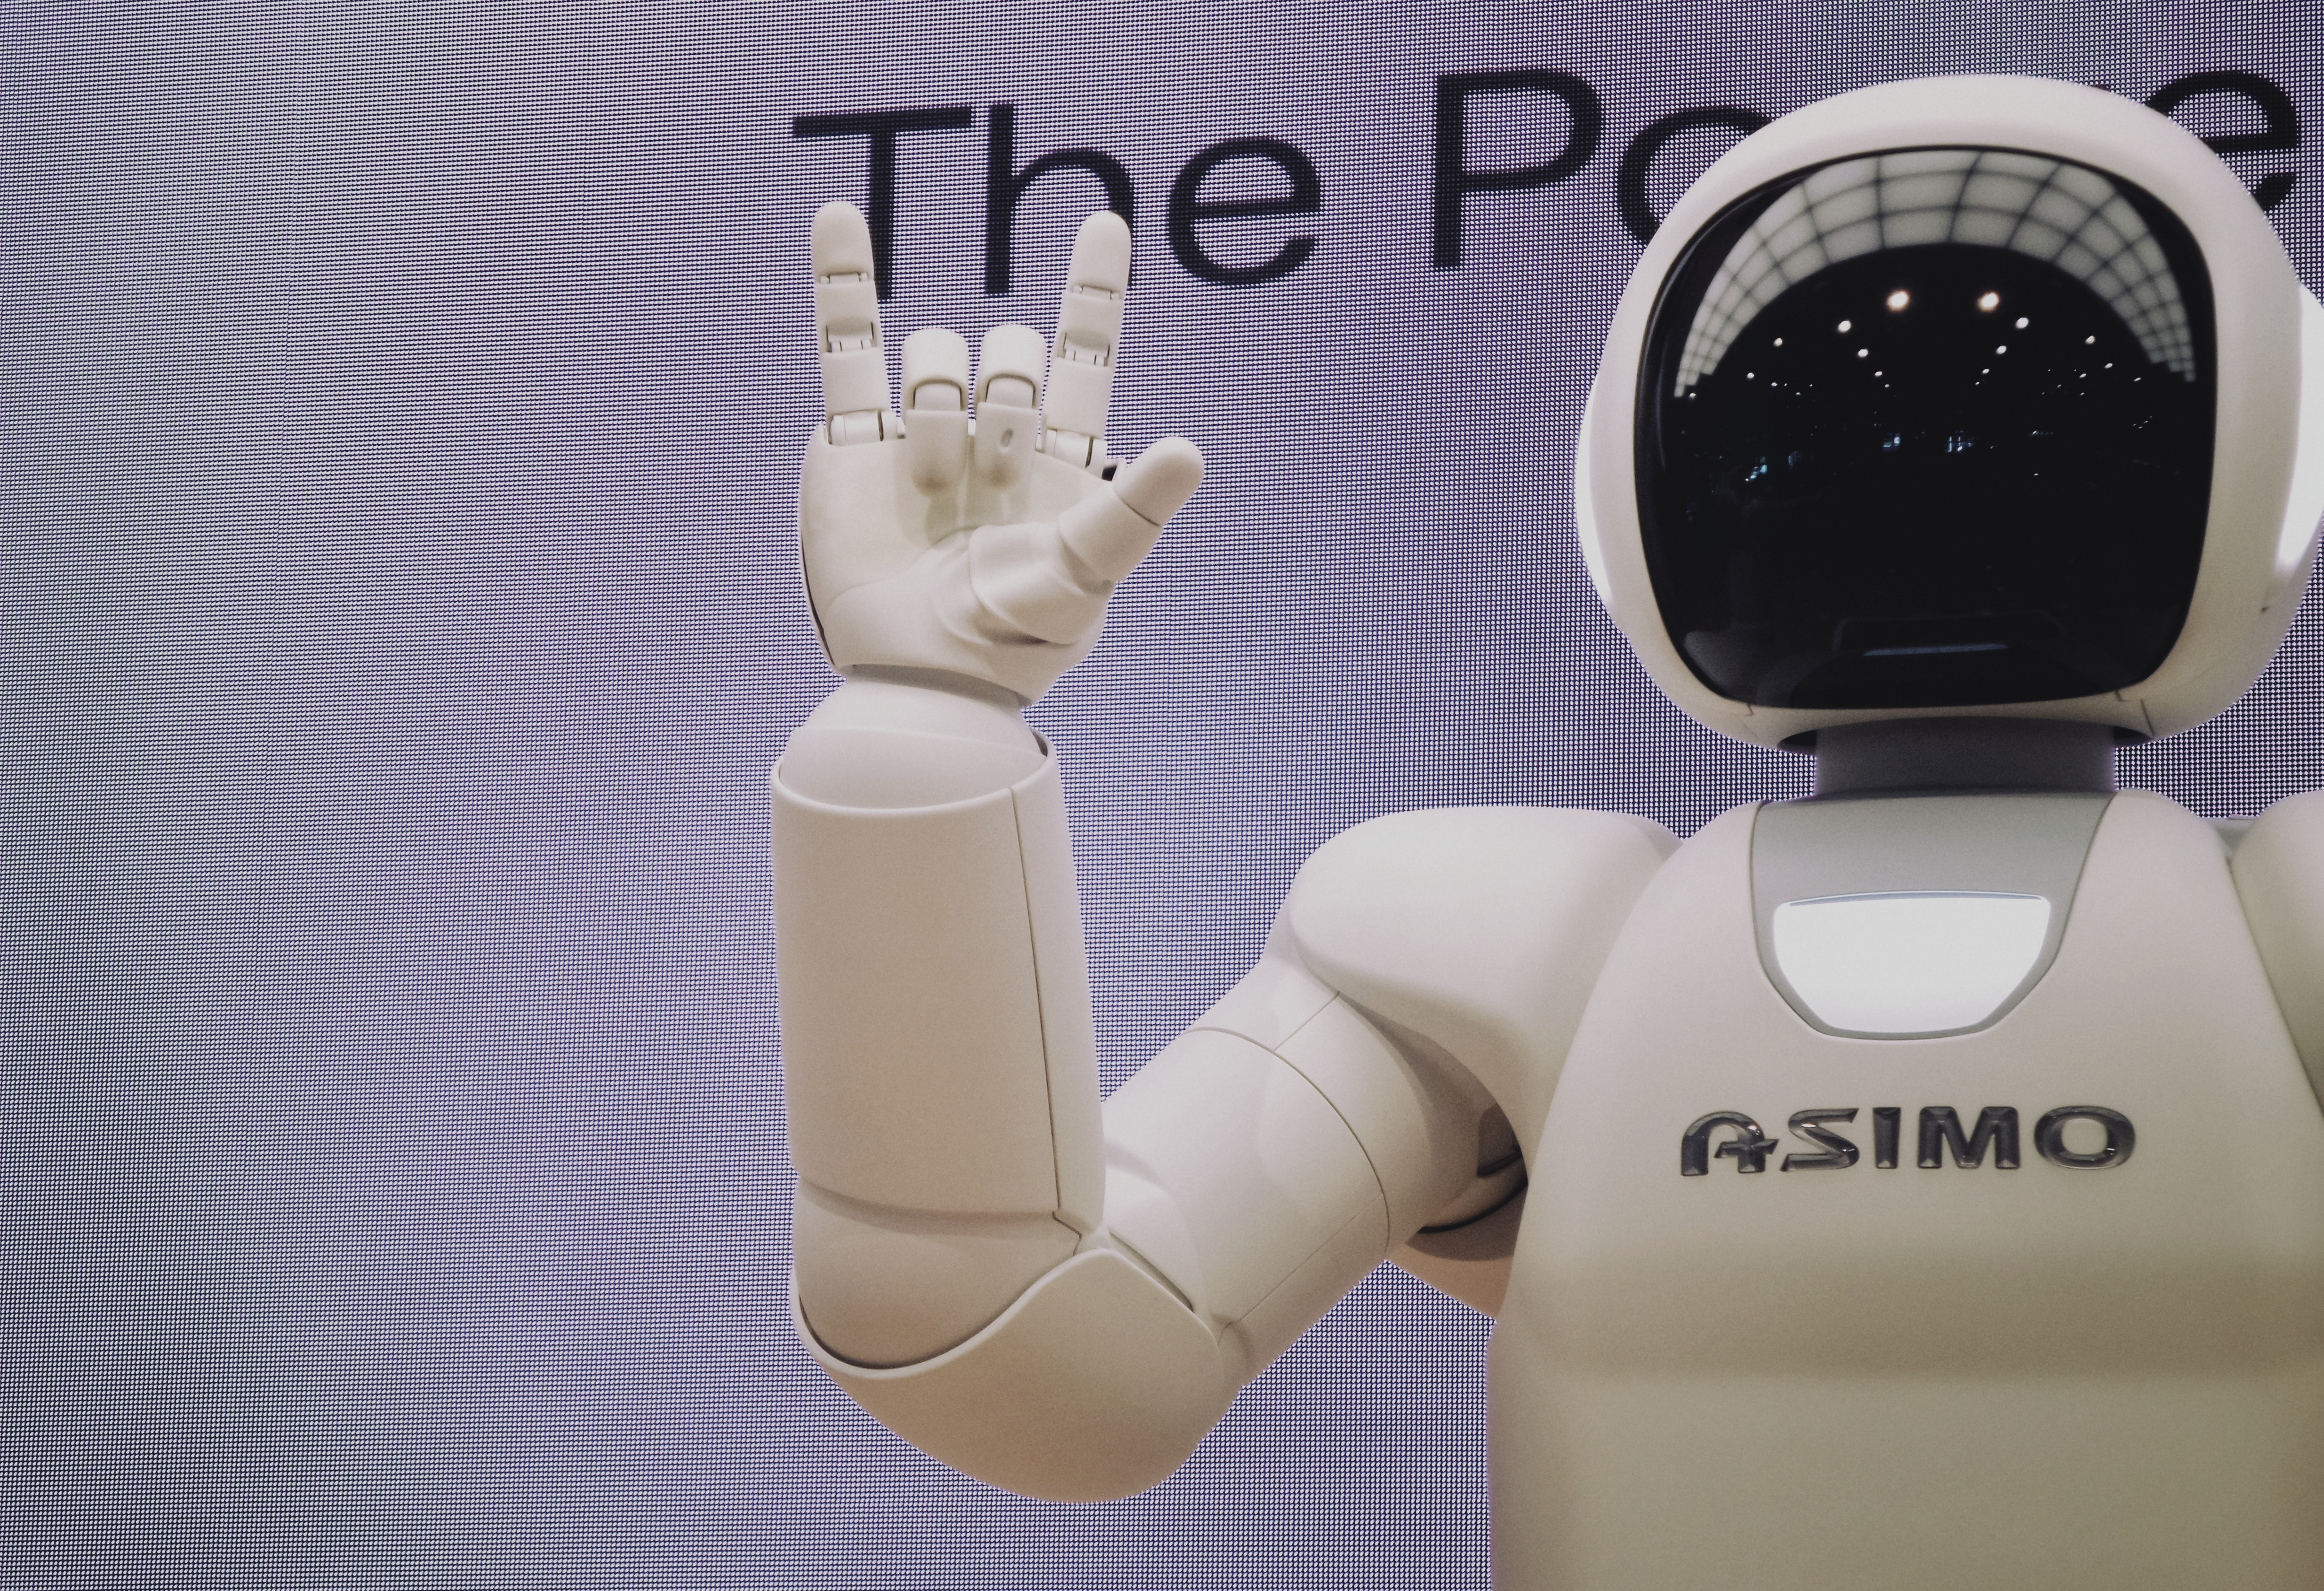 future of morality should we program a.i. With Human Values